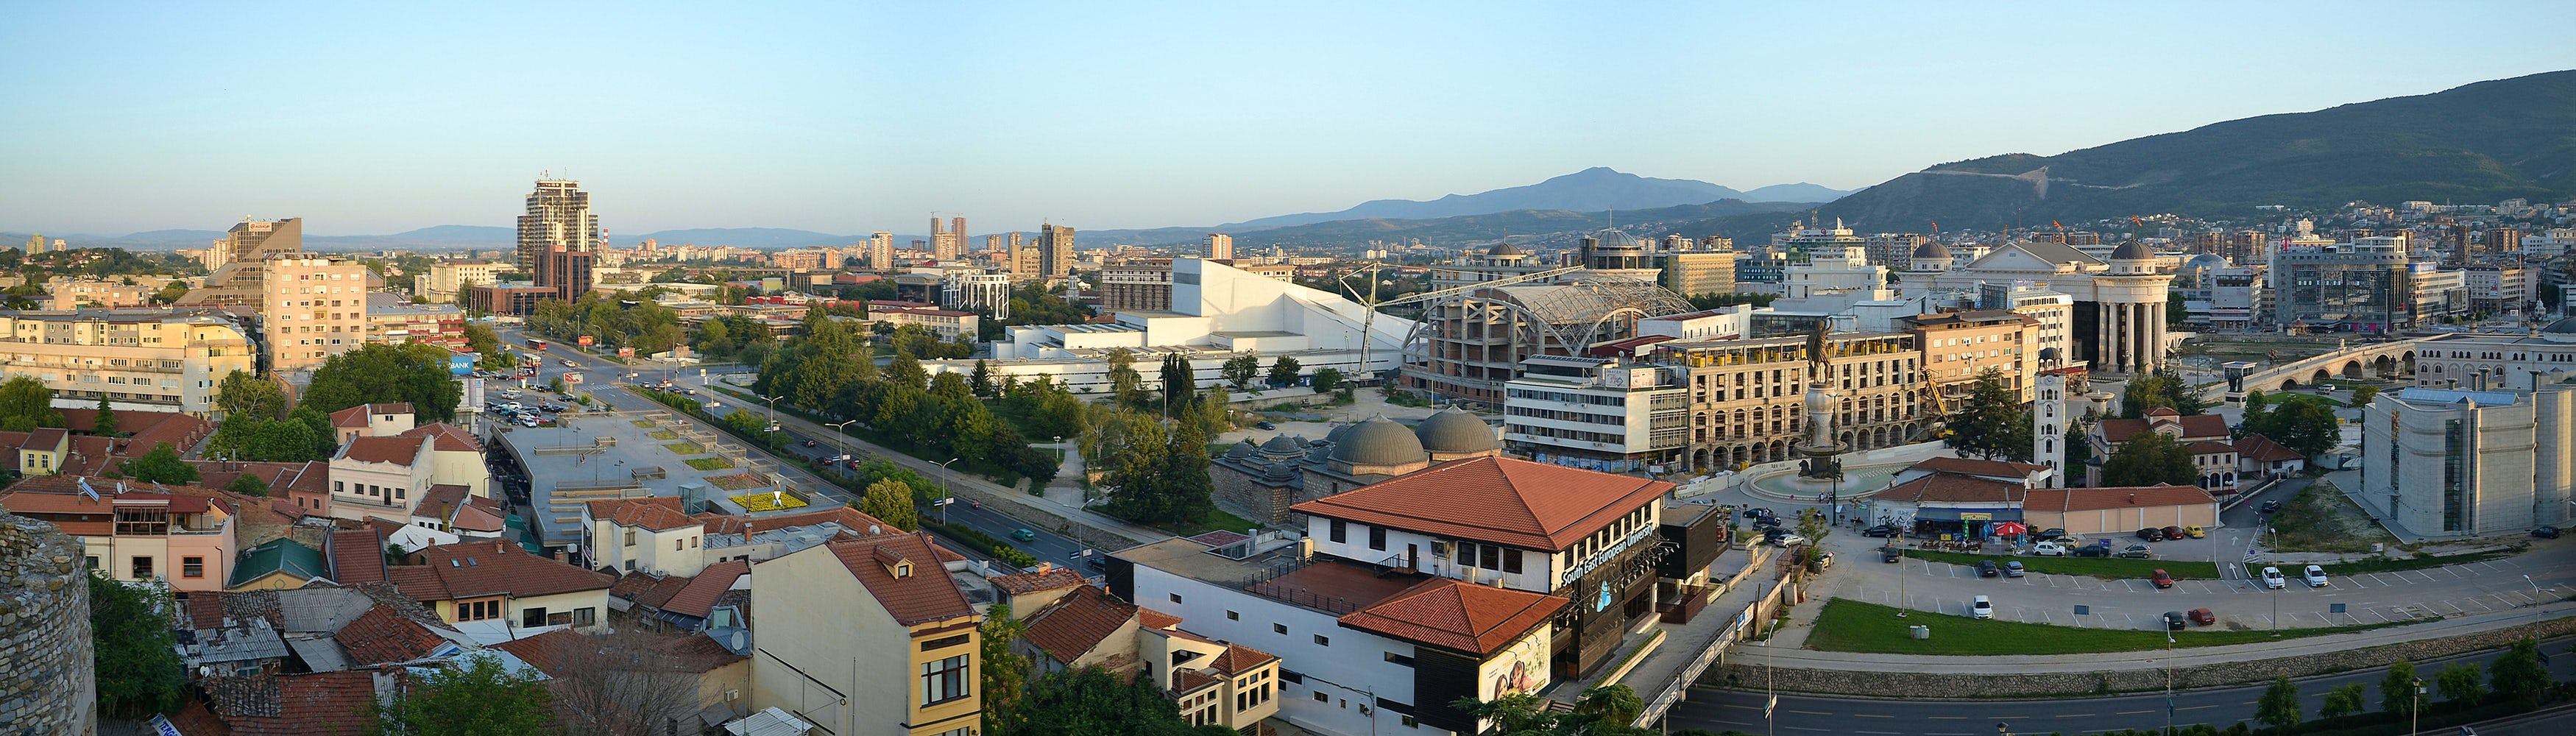 City of Skopje